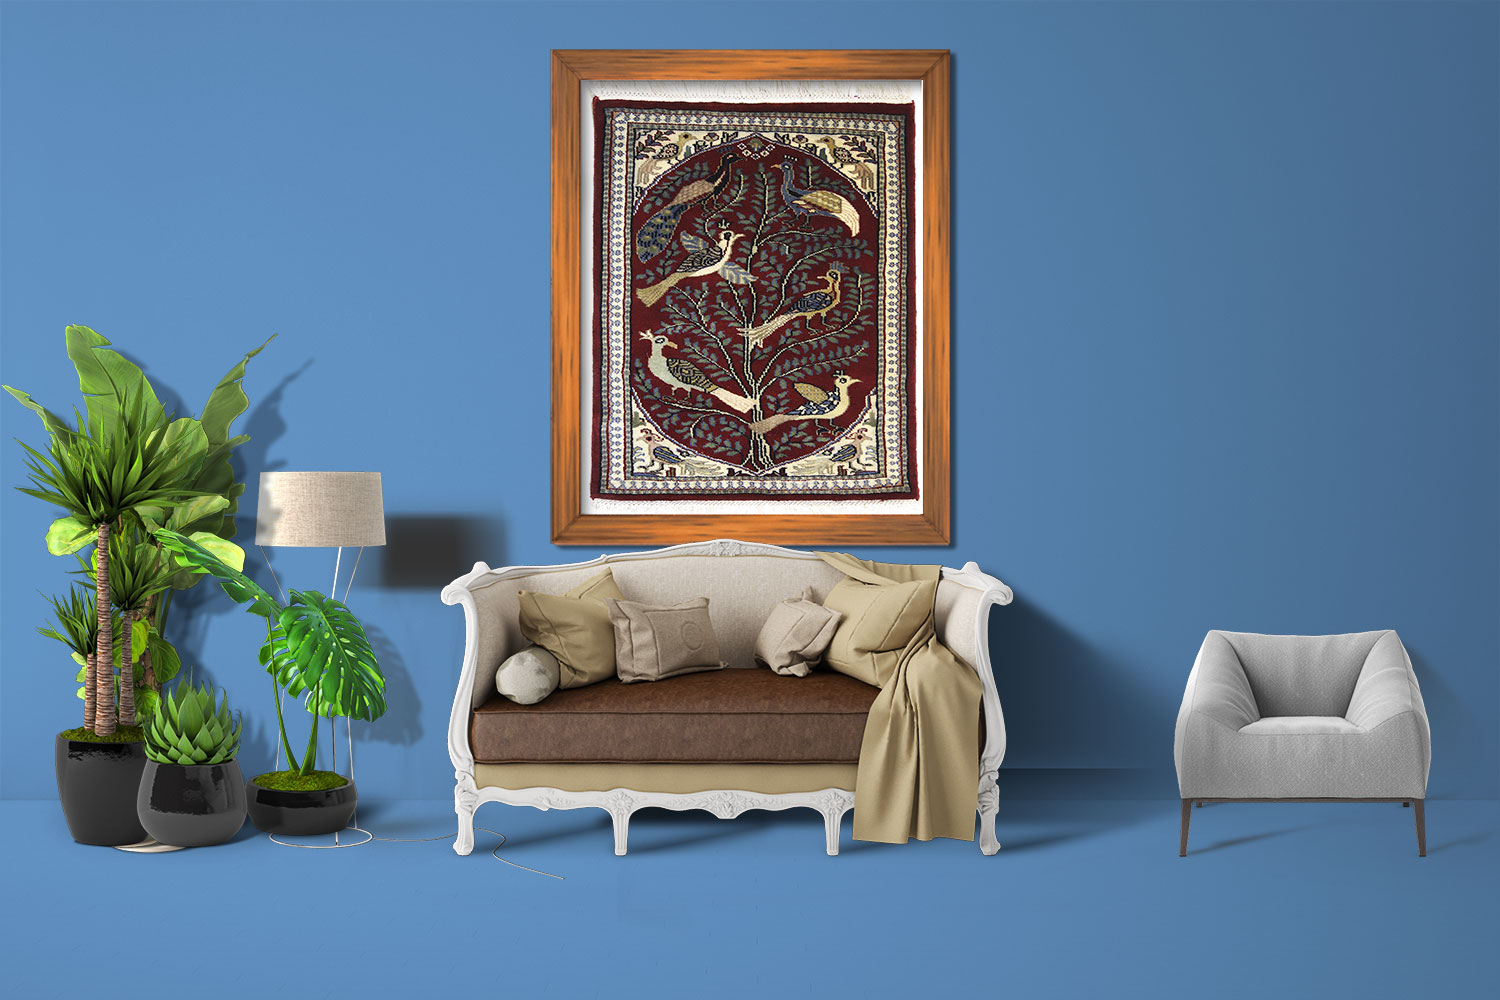 Wall hanging oriental carpet